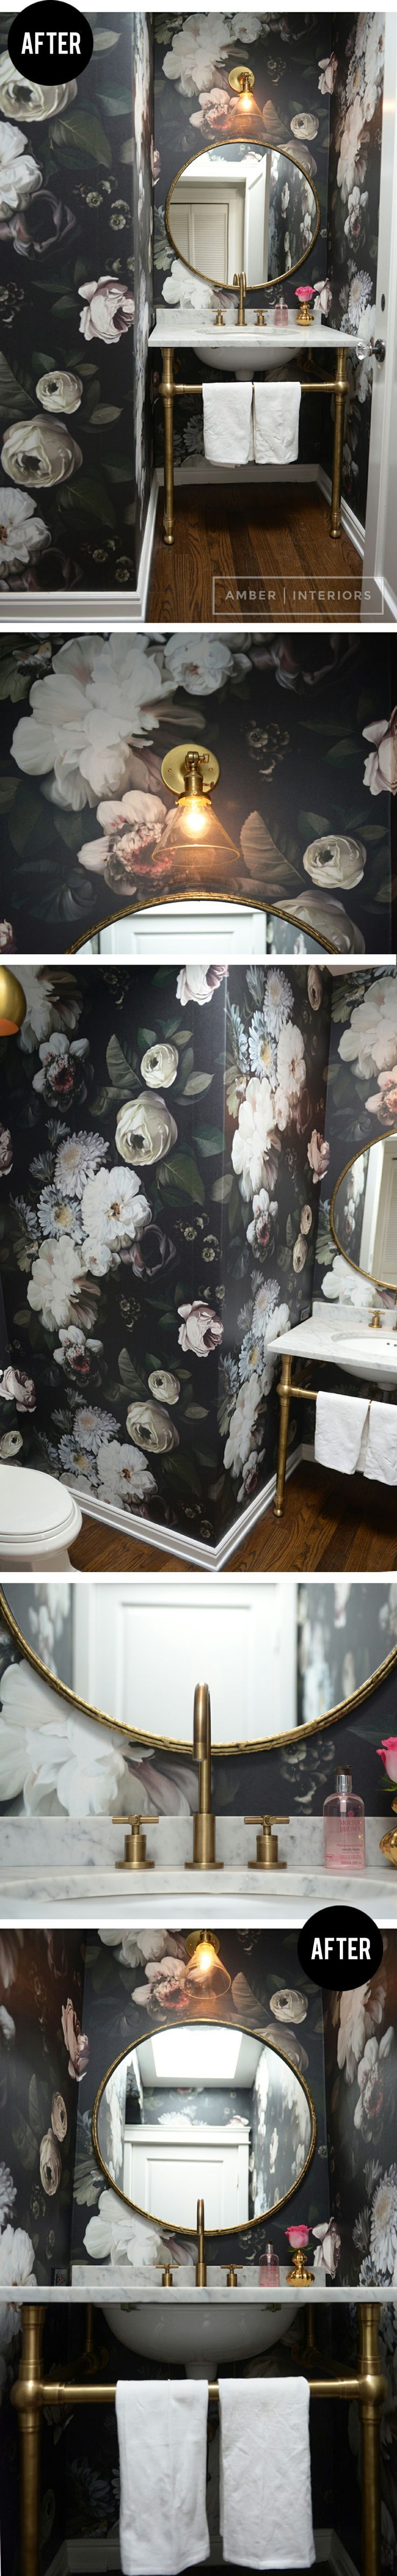 Best images about Wallpaper on Pinterest Powder Breakfast